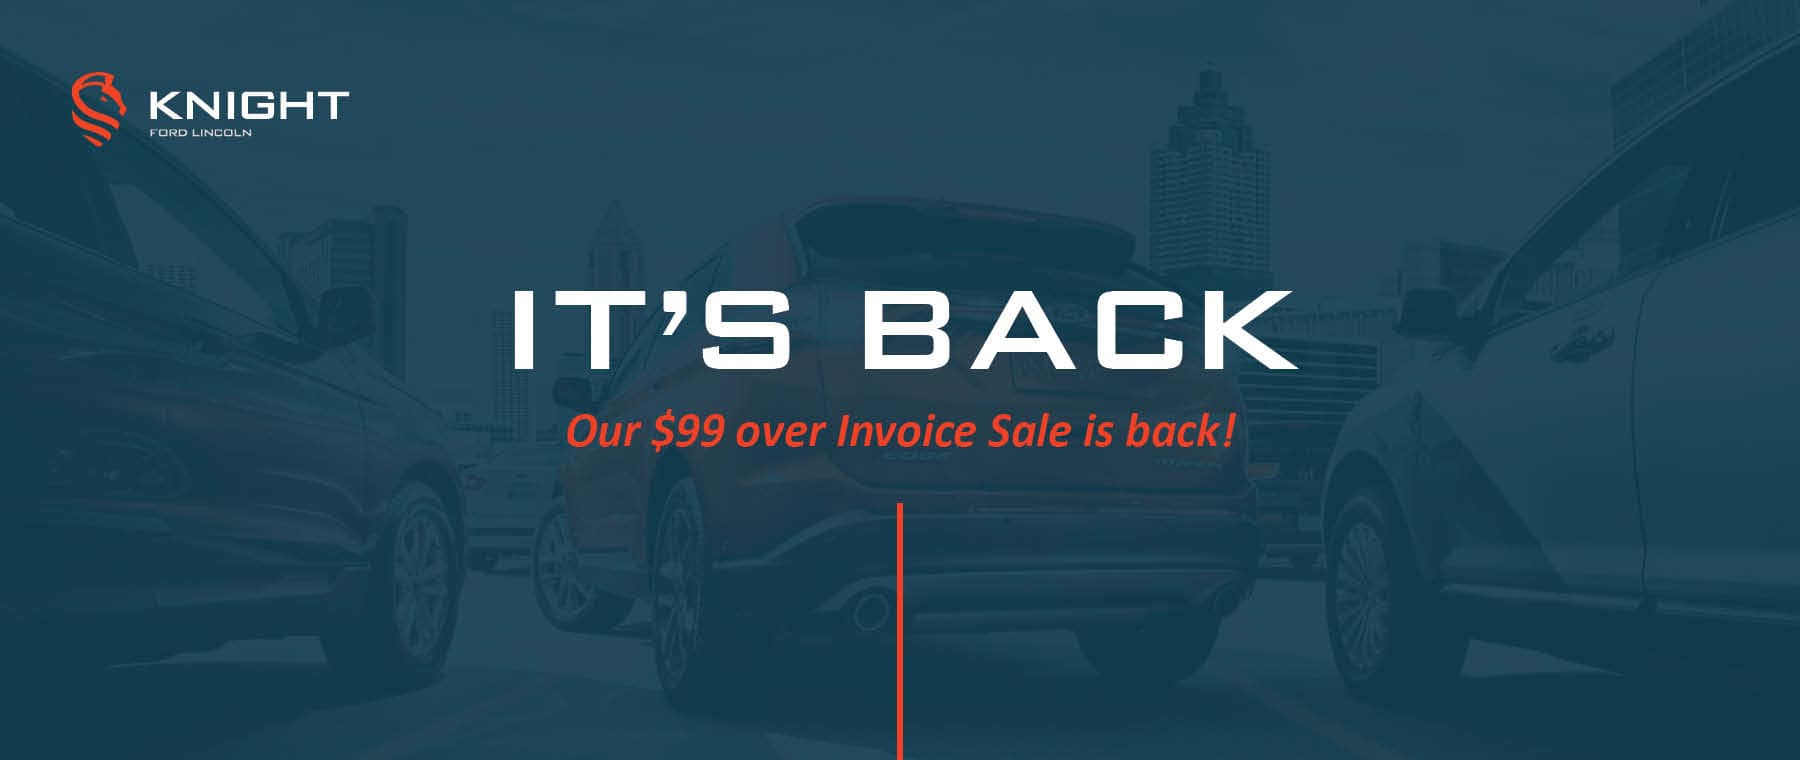 Our $99 Over Invoice Sale is Back!